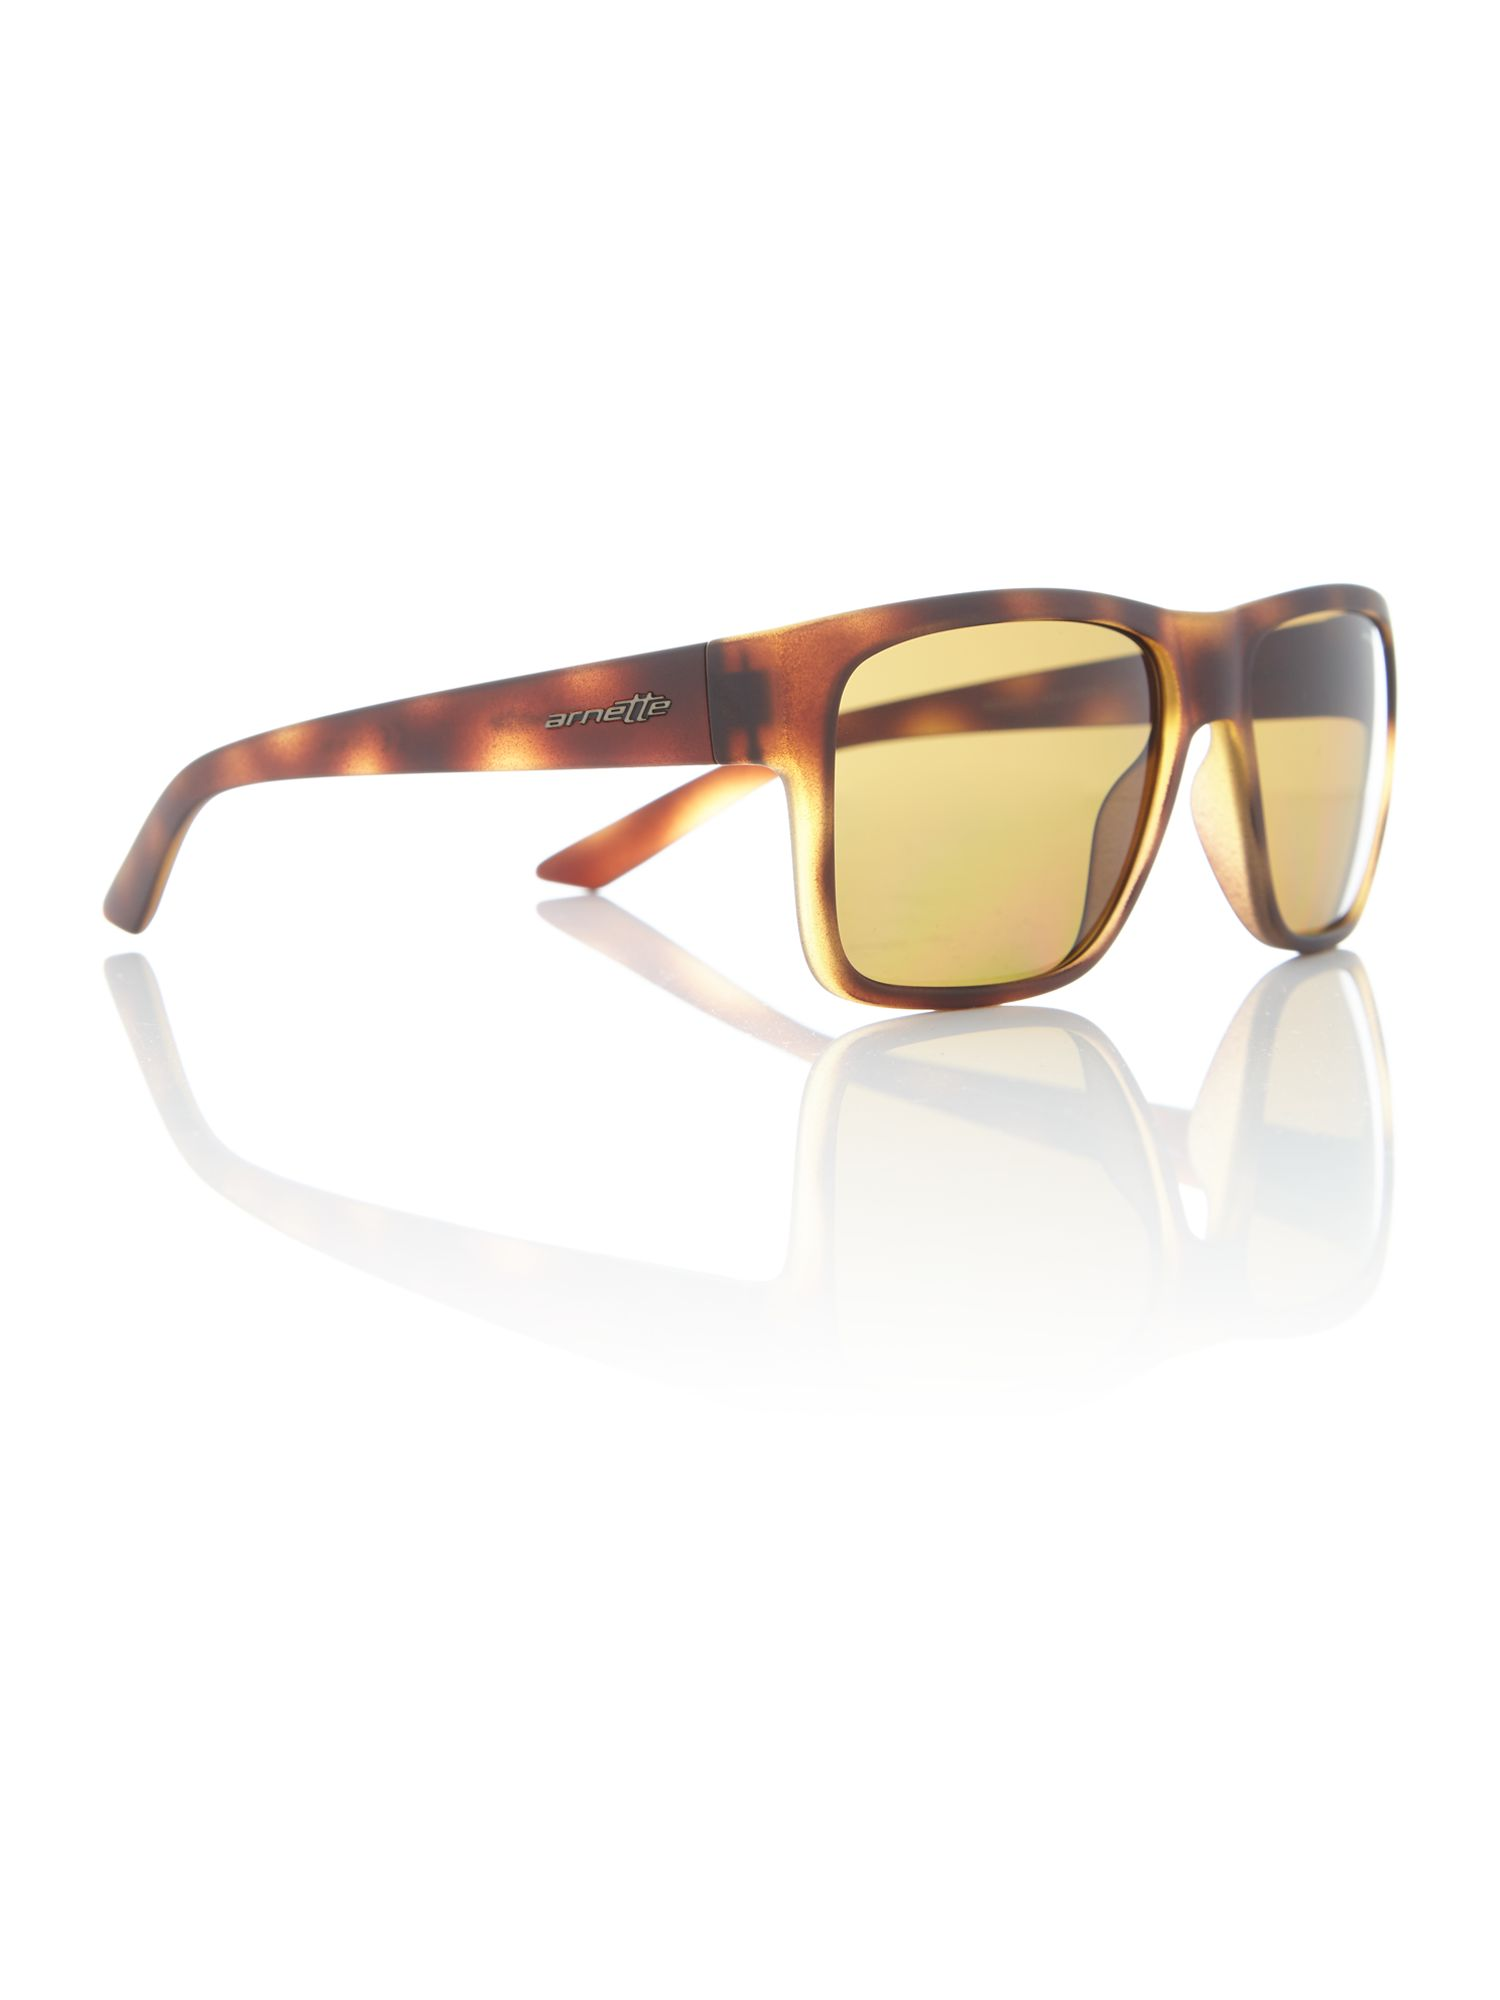 Arnette Havana square AN4226 sunglasses